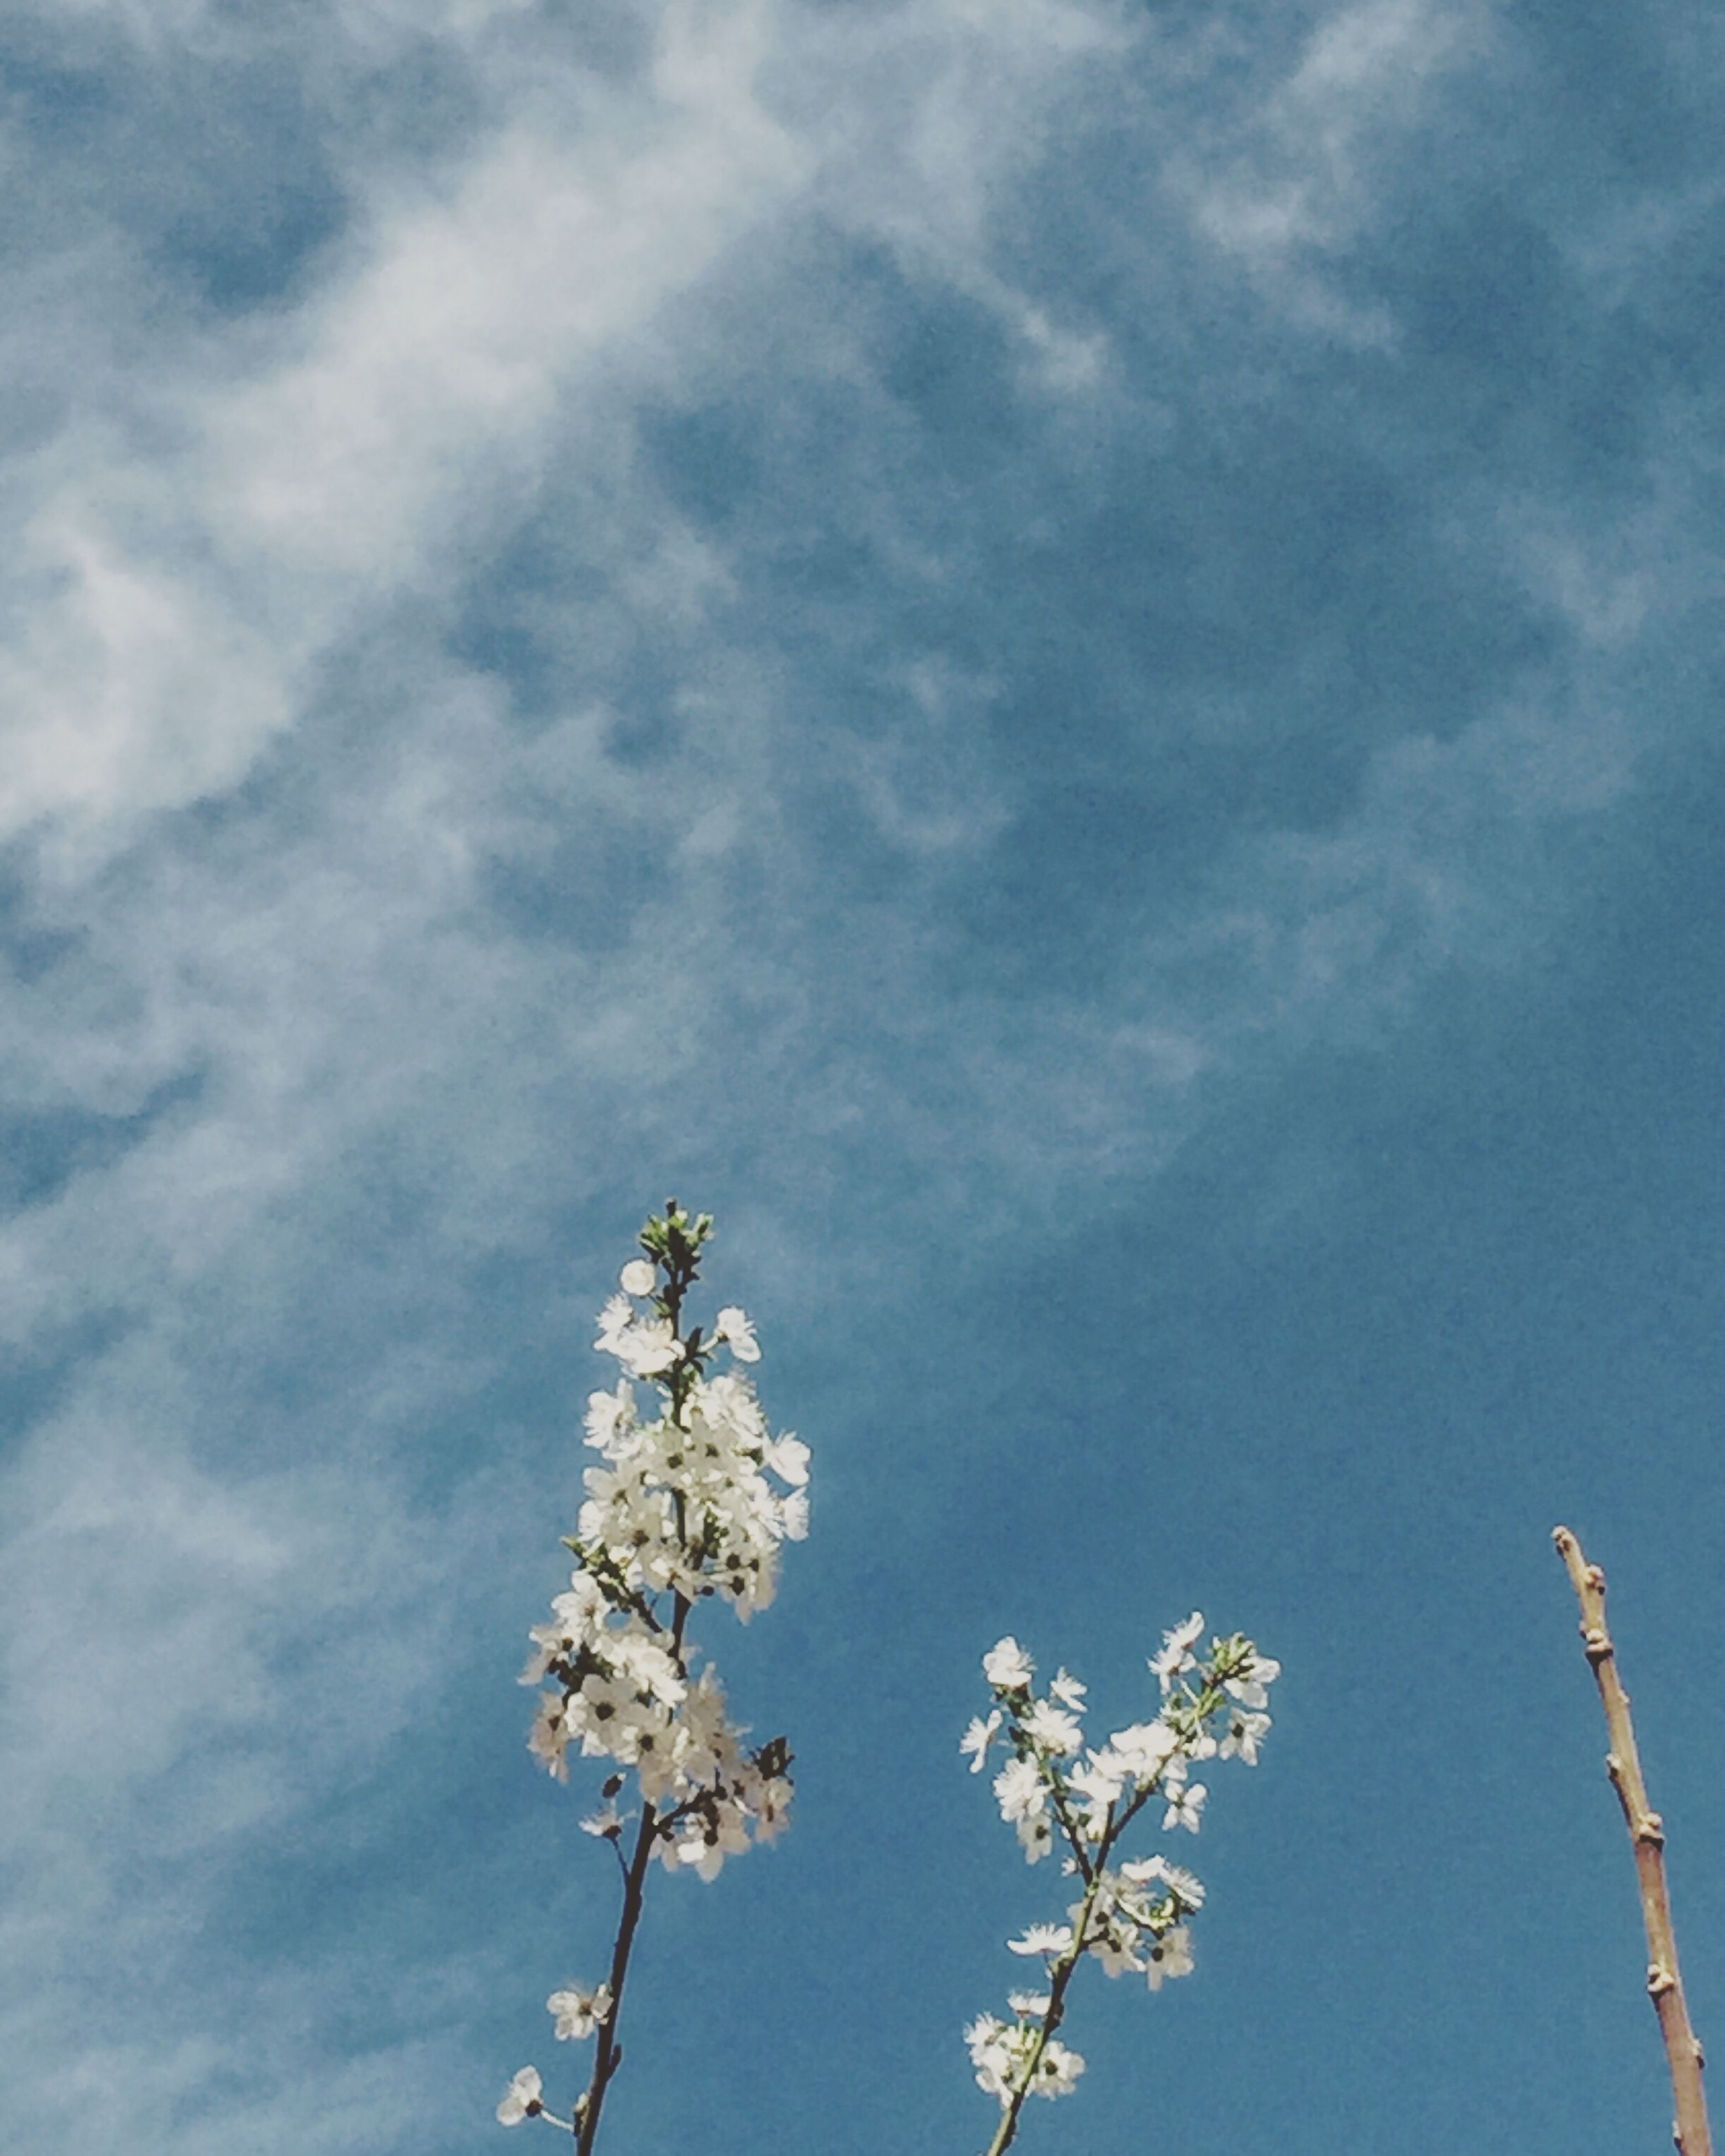 sky, low angle view, cloud - sky, growth, nature, tree, no people, flower, day, outdoors, beauty in nature, fragility, treetop, freshness